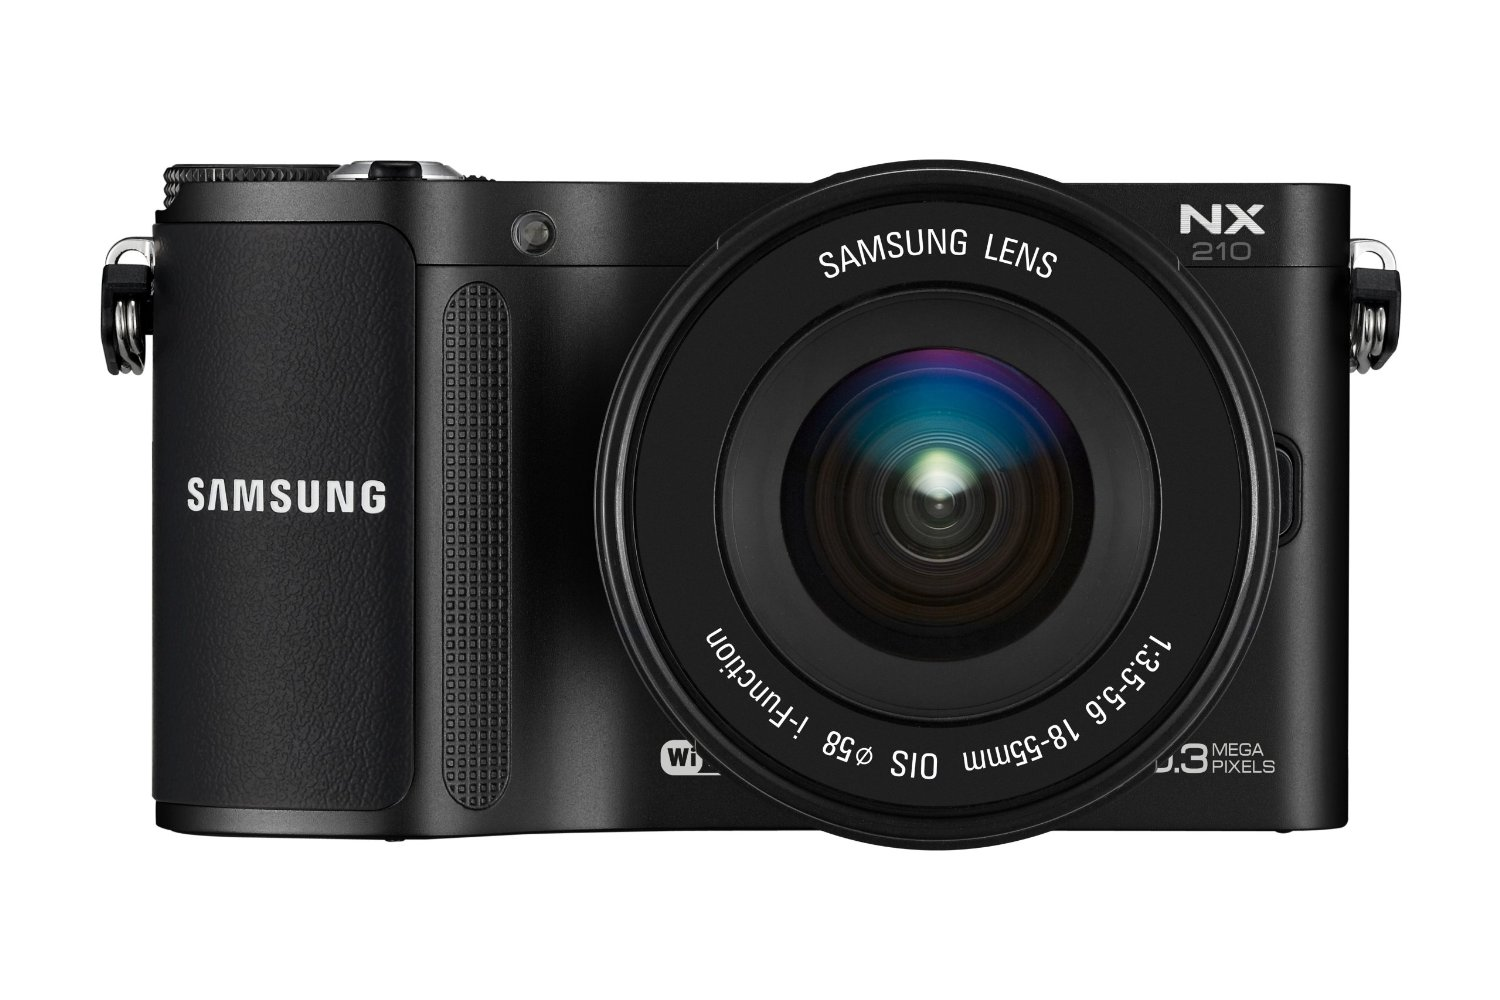 Samsung NX210 Digital WIFI Compact System Camera - Black (20.3MP, 18-55mm Lense Kit) 3.0 inch AMOLED